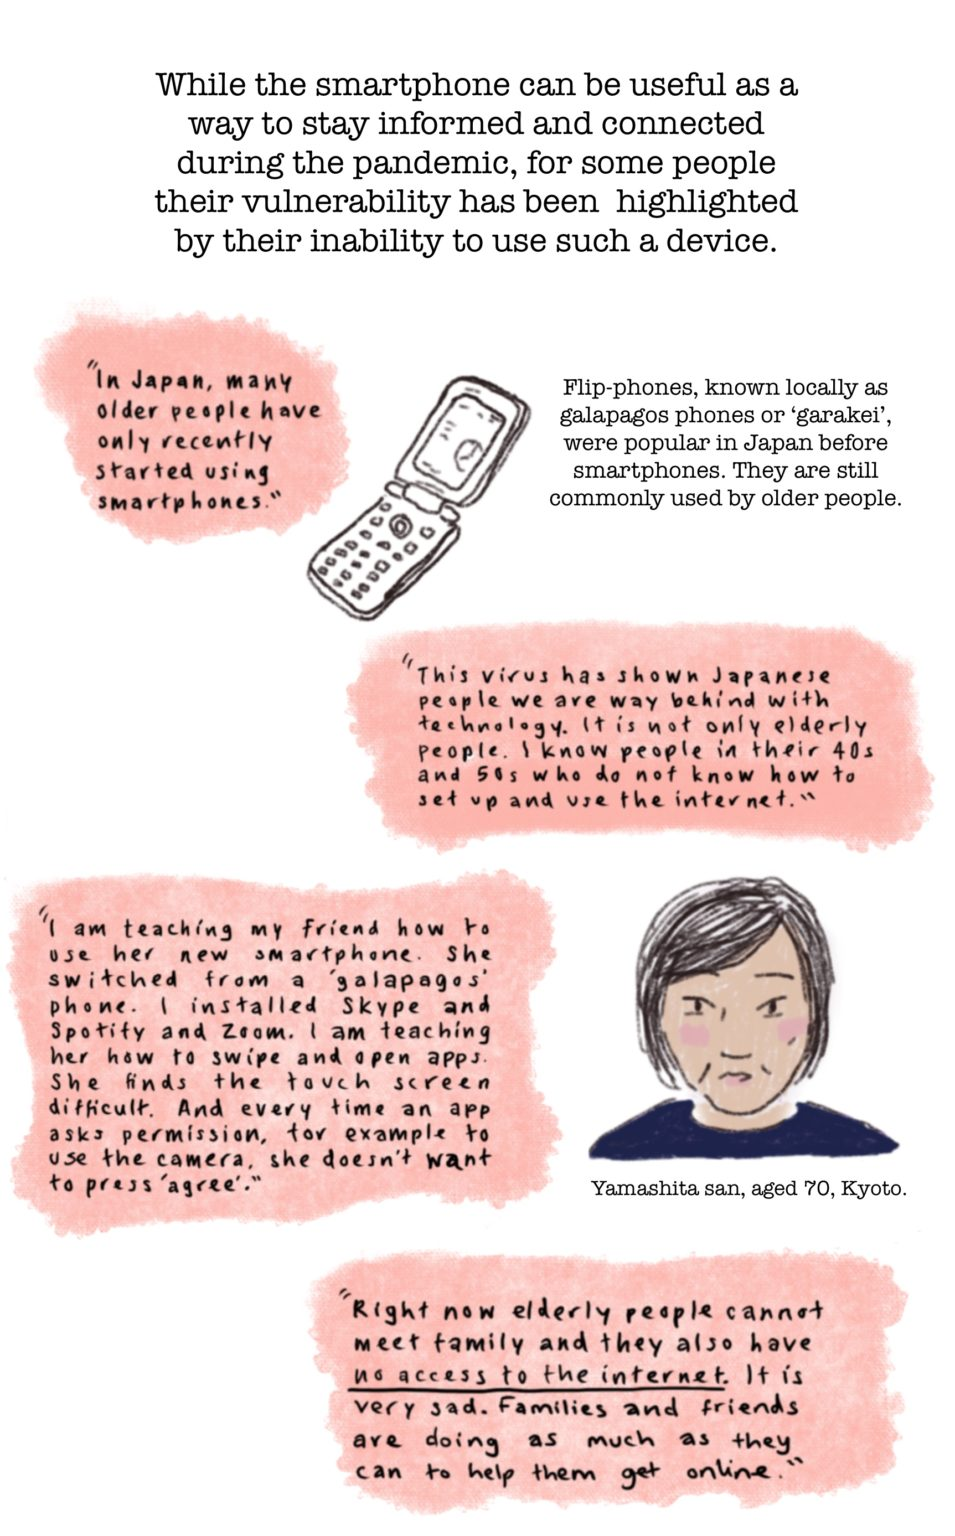 Cartoon image of woman and cellphone with word bubbles about the elderly and technology-use habits